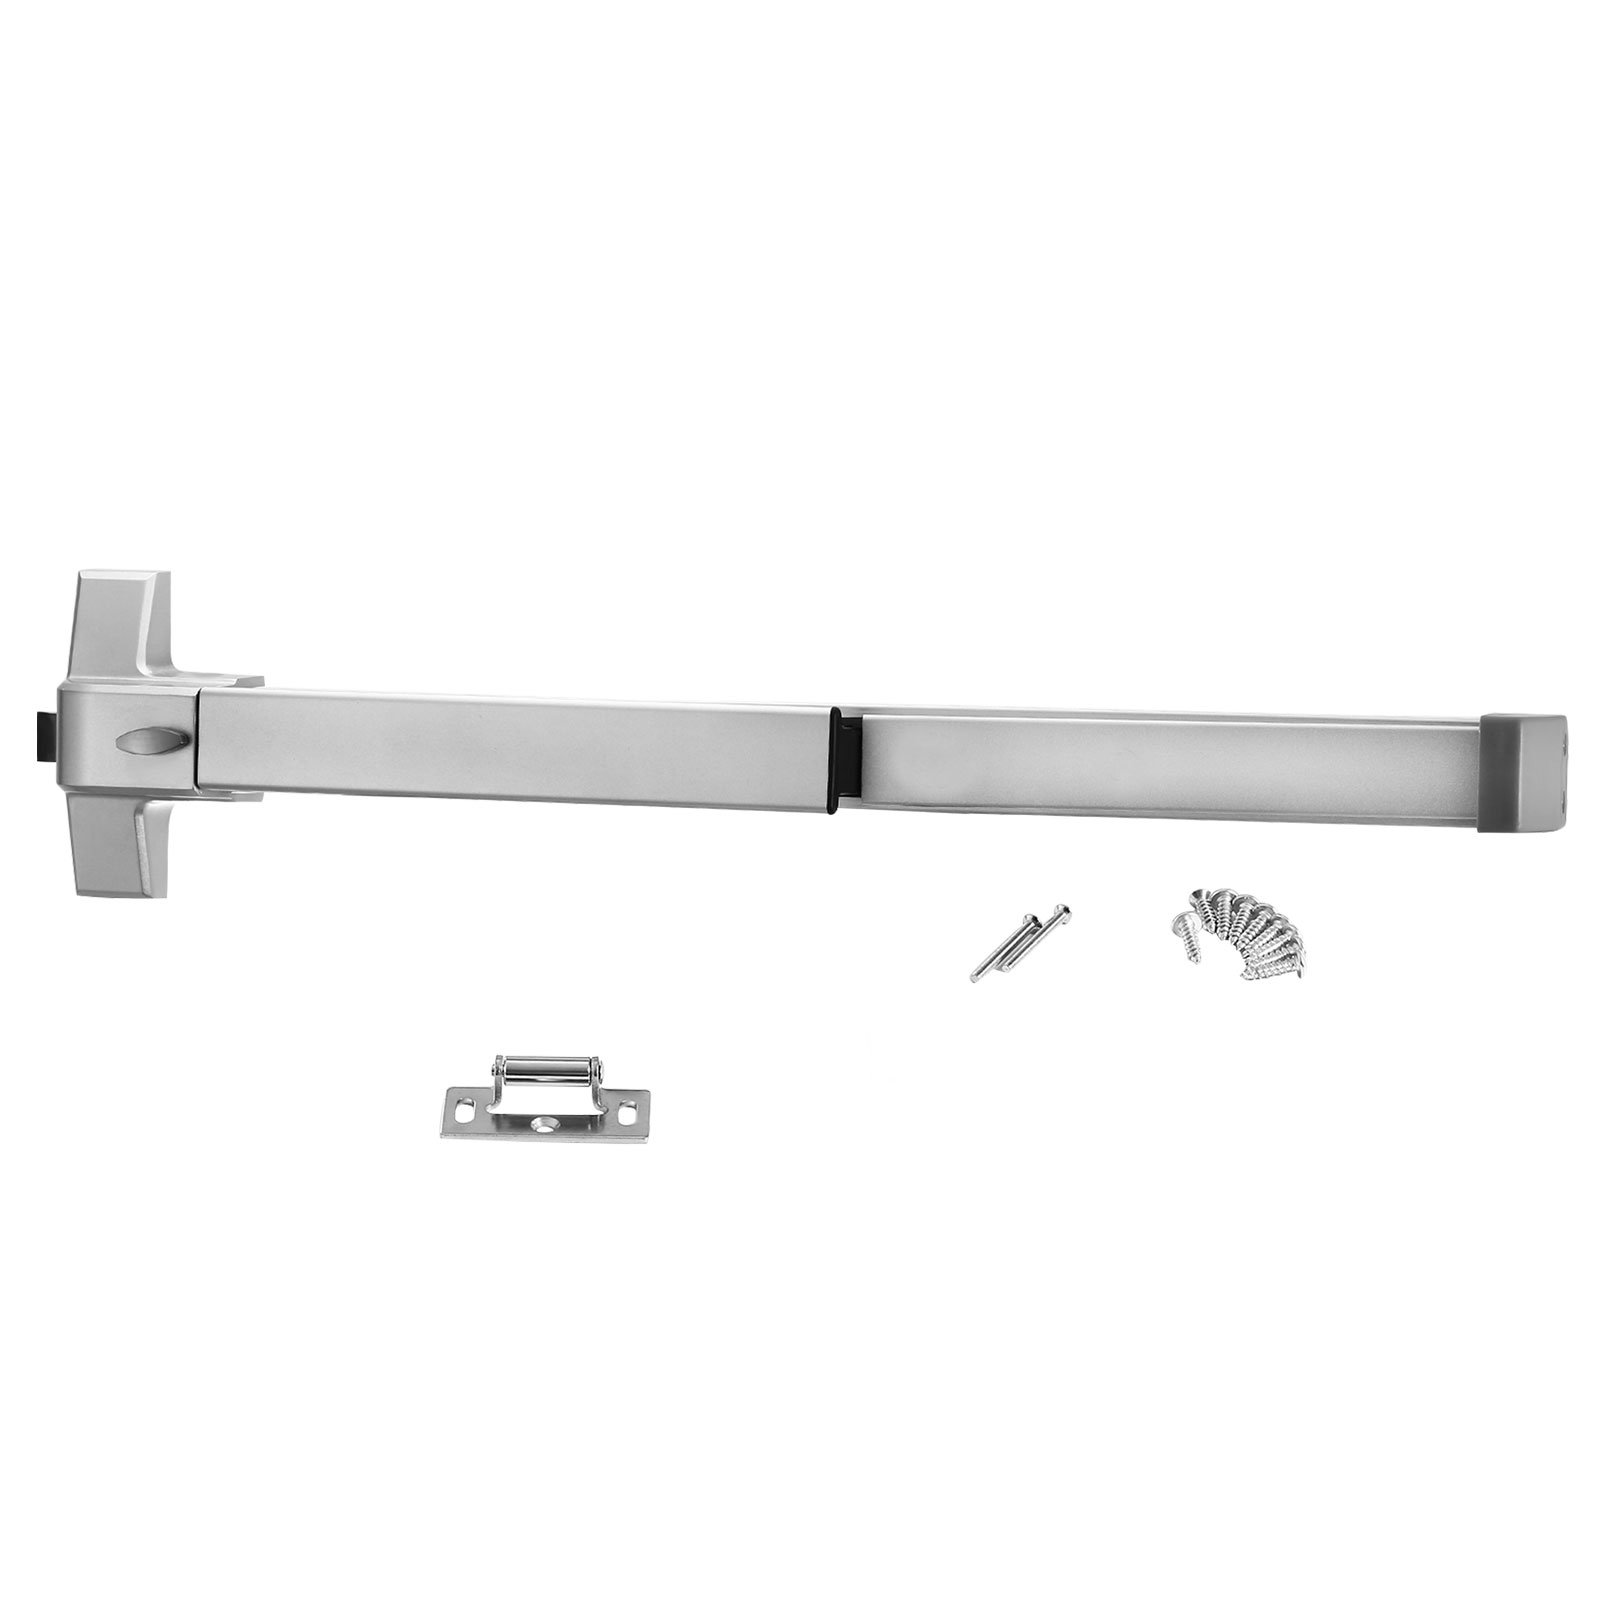 OrangeA Push Bar Panic Exit Device Emergency Lock made by Stainless Steel 400 Series (Push Bar)